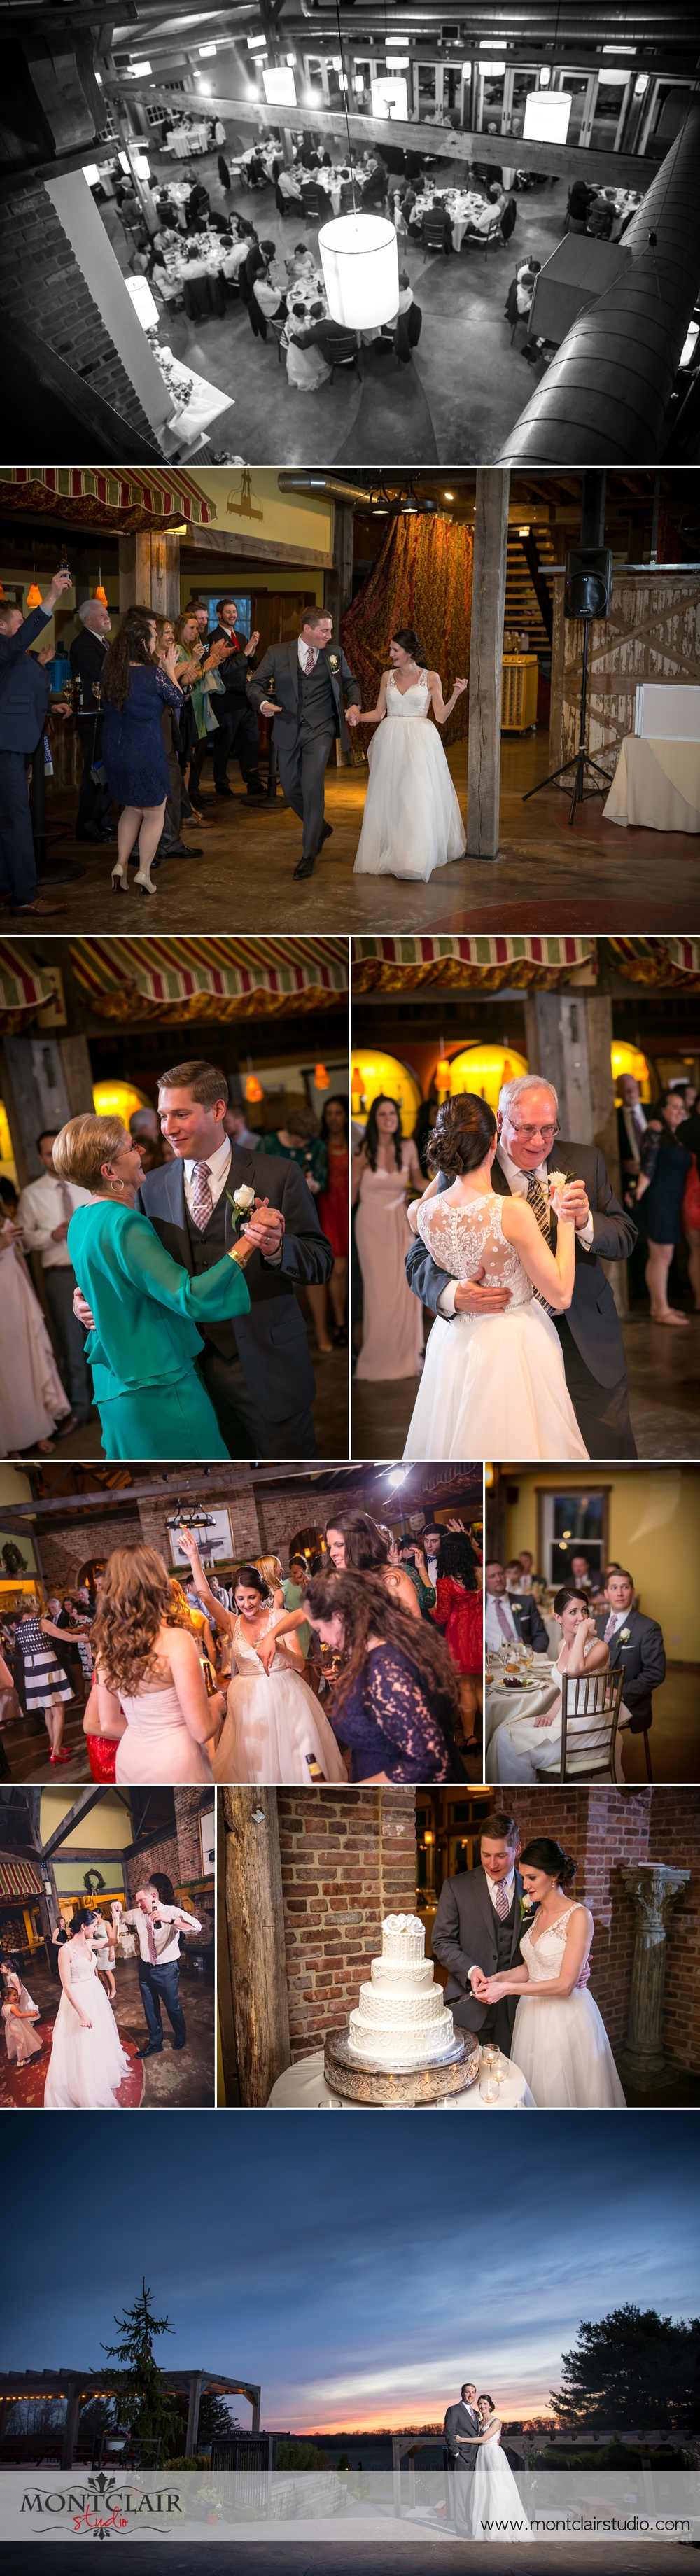 Wedding Amy And Geritt  3.jpg